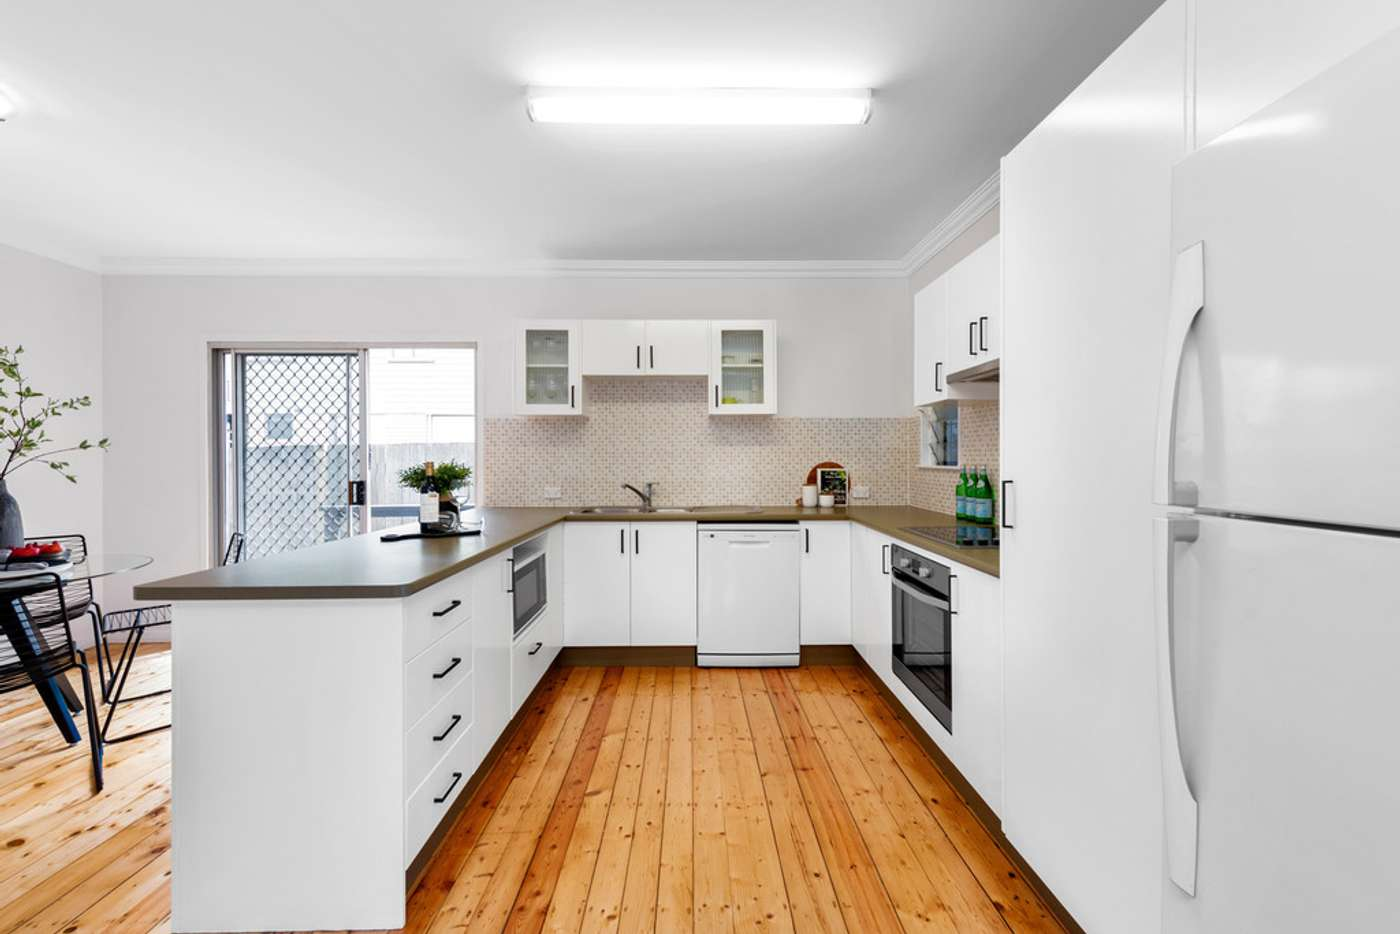 Fifth view of Homely house listing, 108 Winstanley Street, Carina Heights QLD 4152